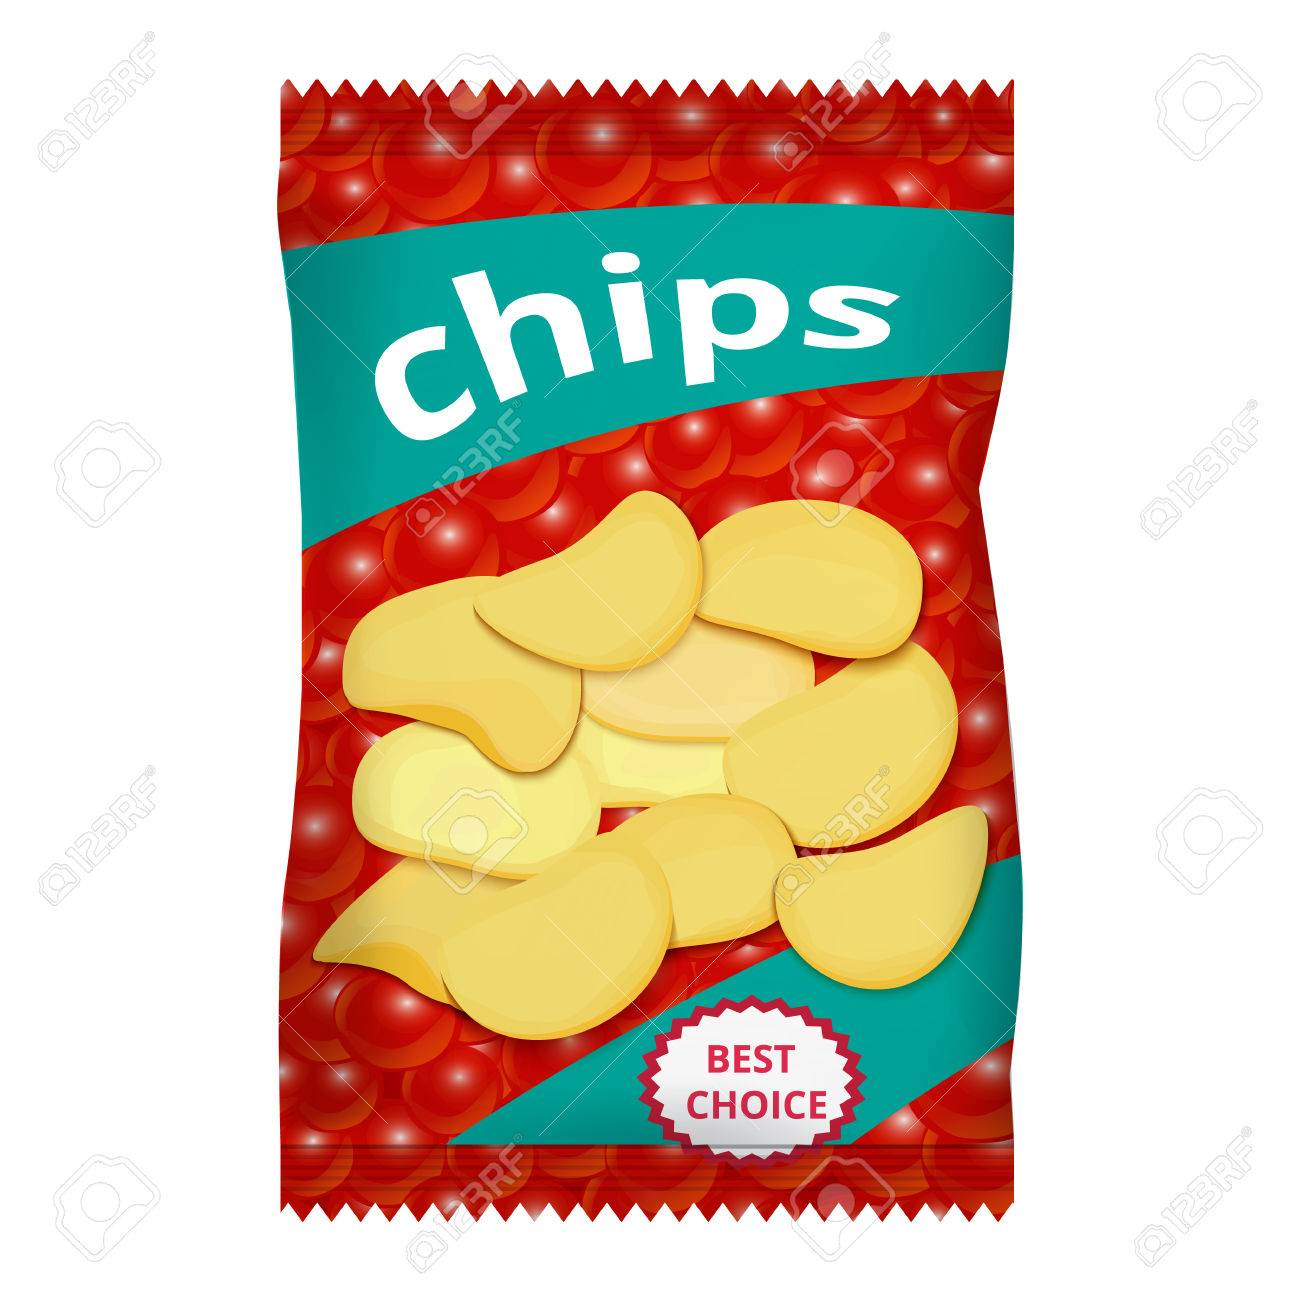 Chips with red caviar, packaging design - 55377566